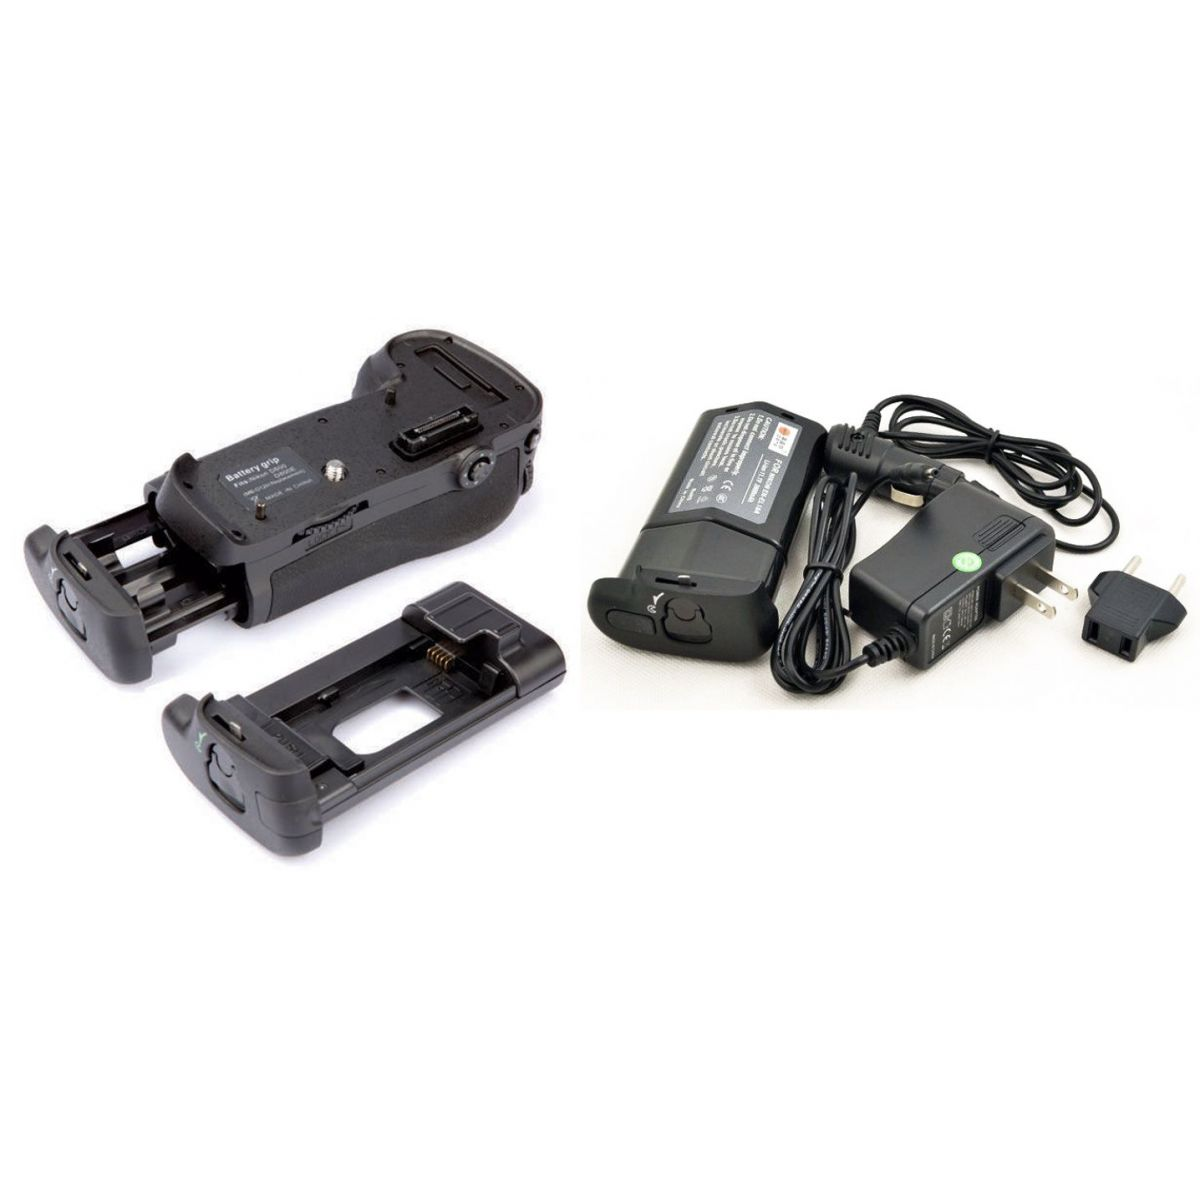 Kit Battery Grip MB-D12 + bateria EN-EL18A para Nikon D800, D810